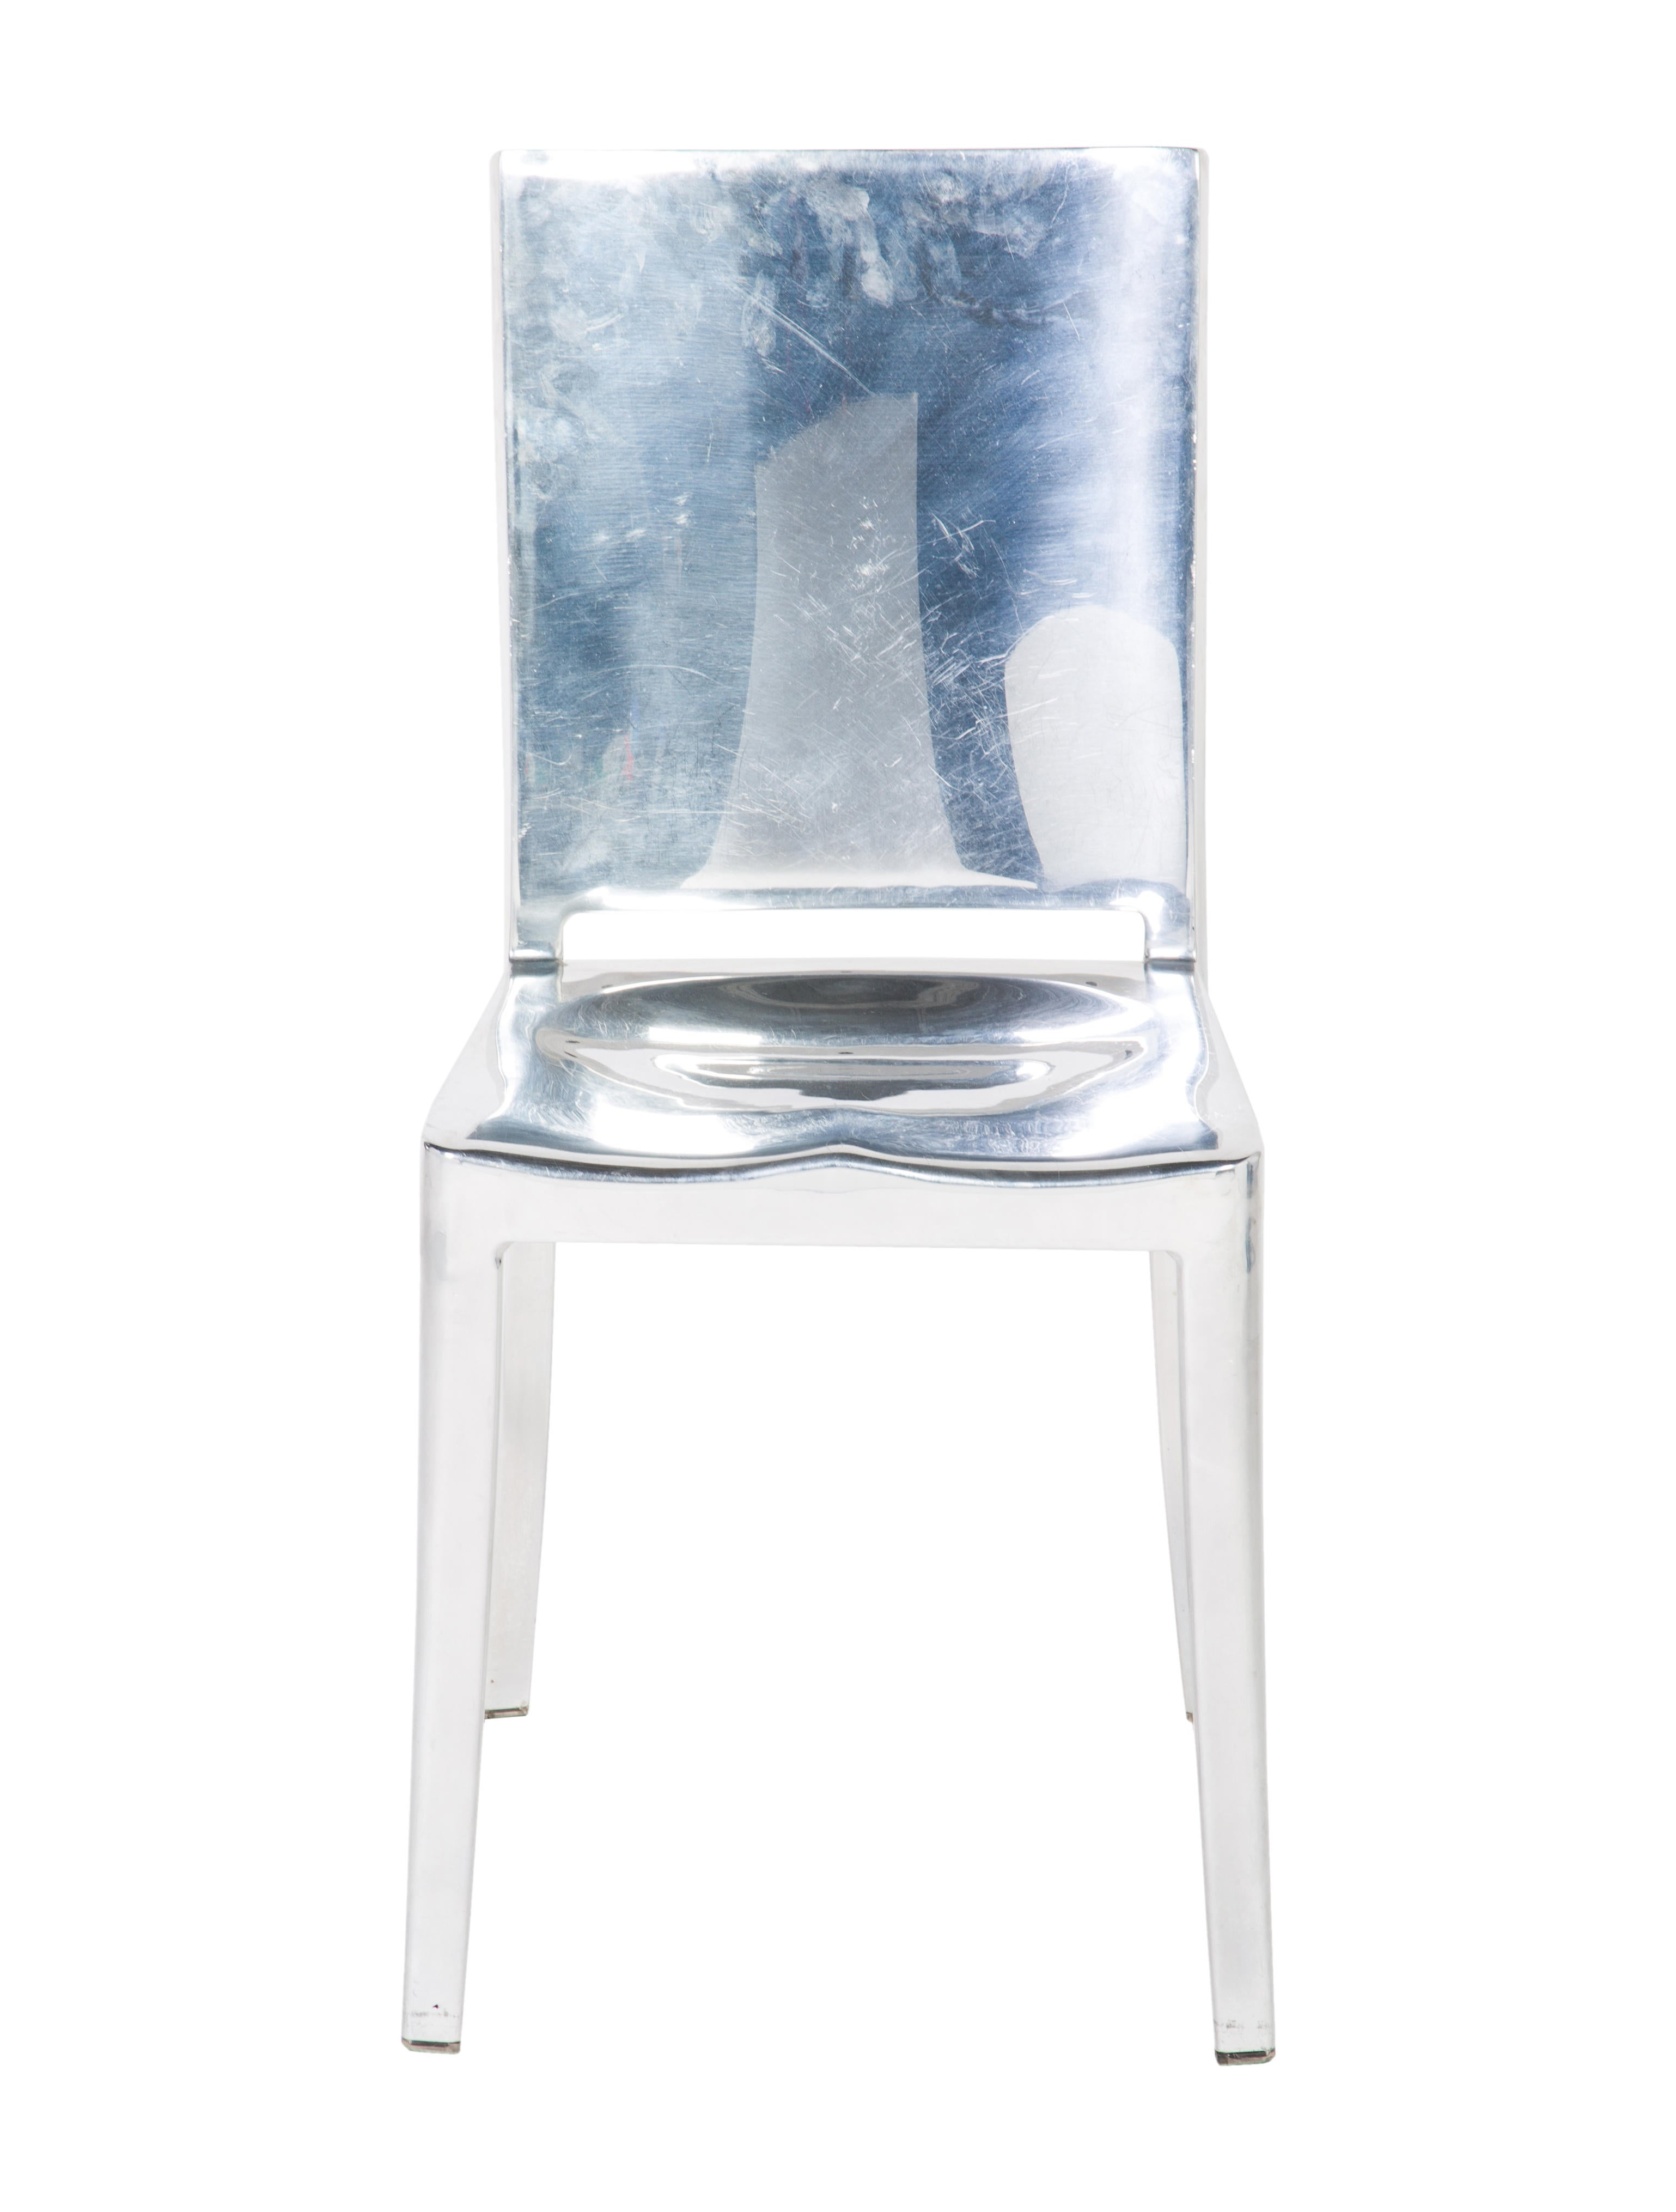 Philippe Starck Emeco Hudson Chair Furniture Ppe20036